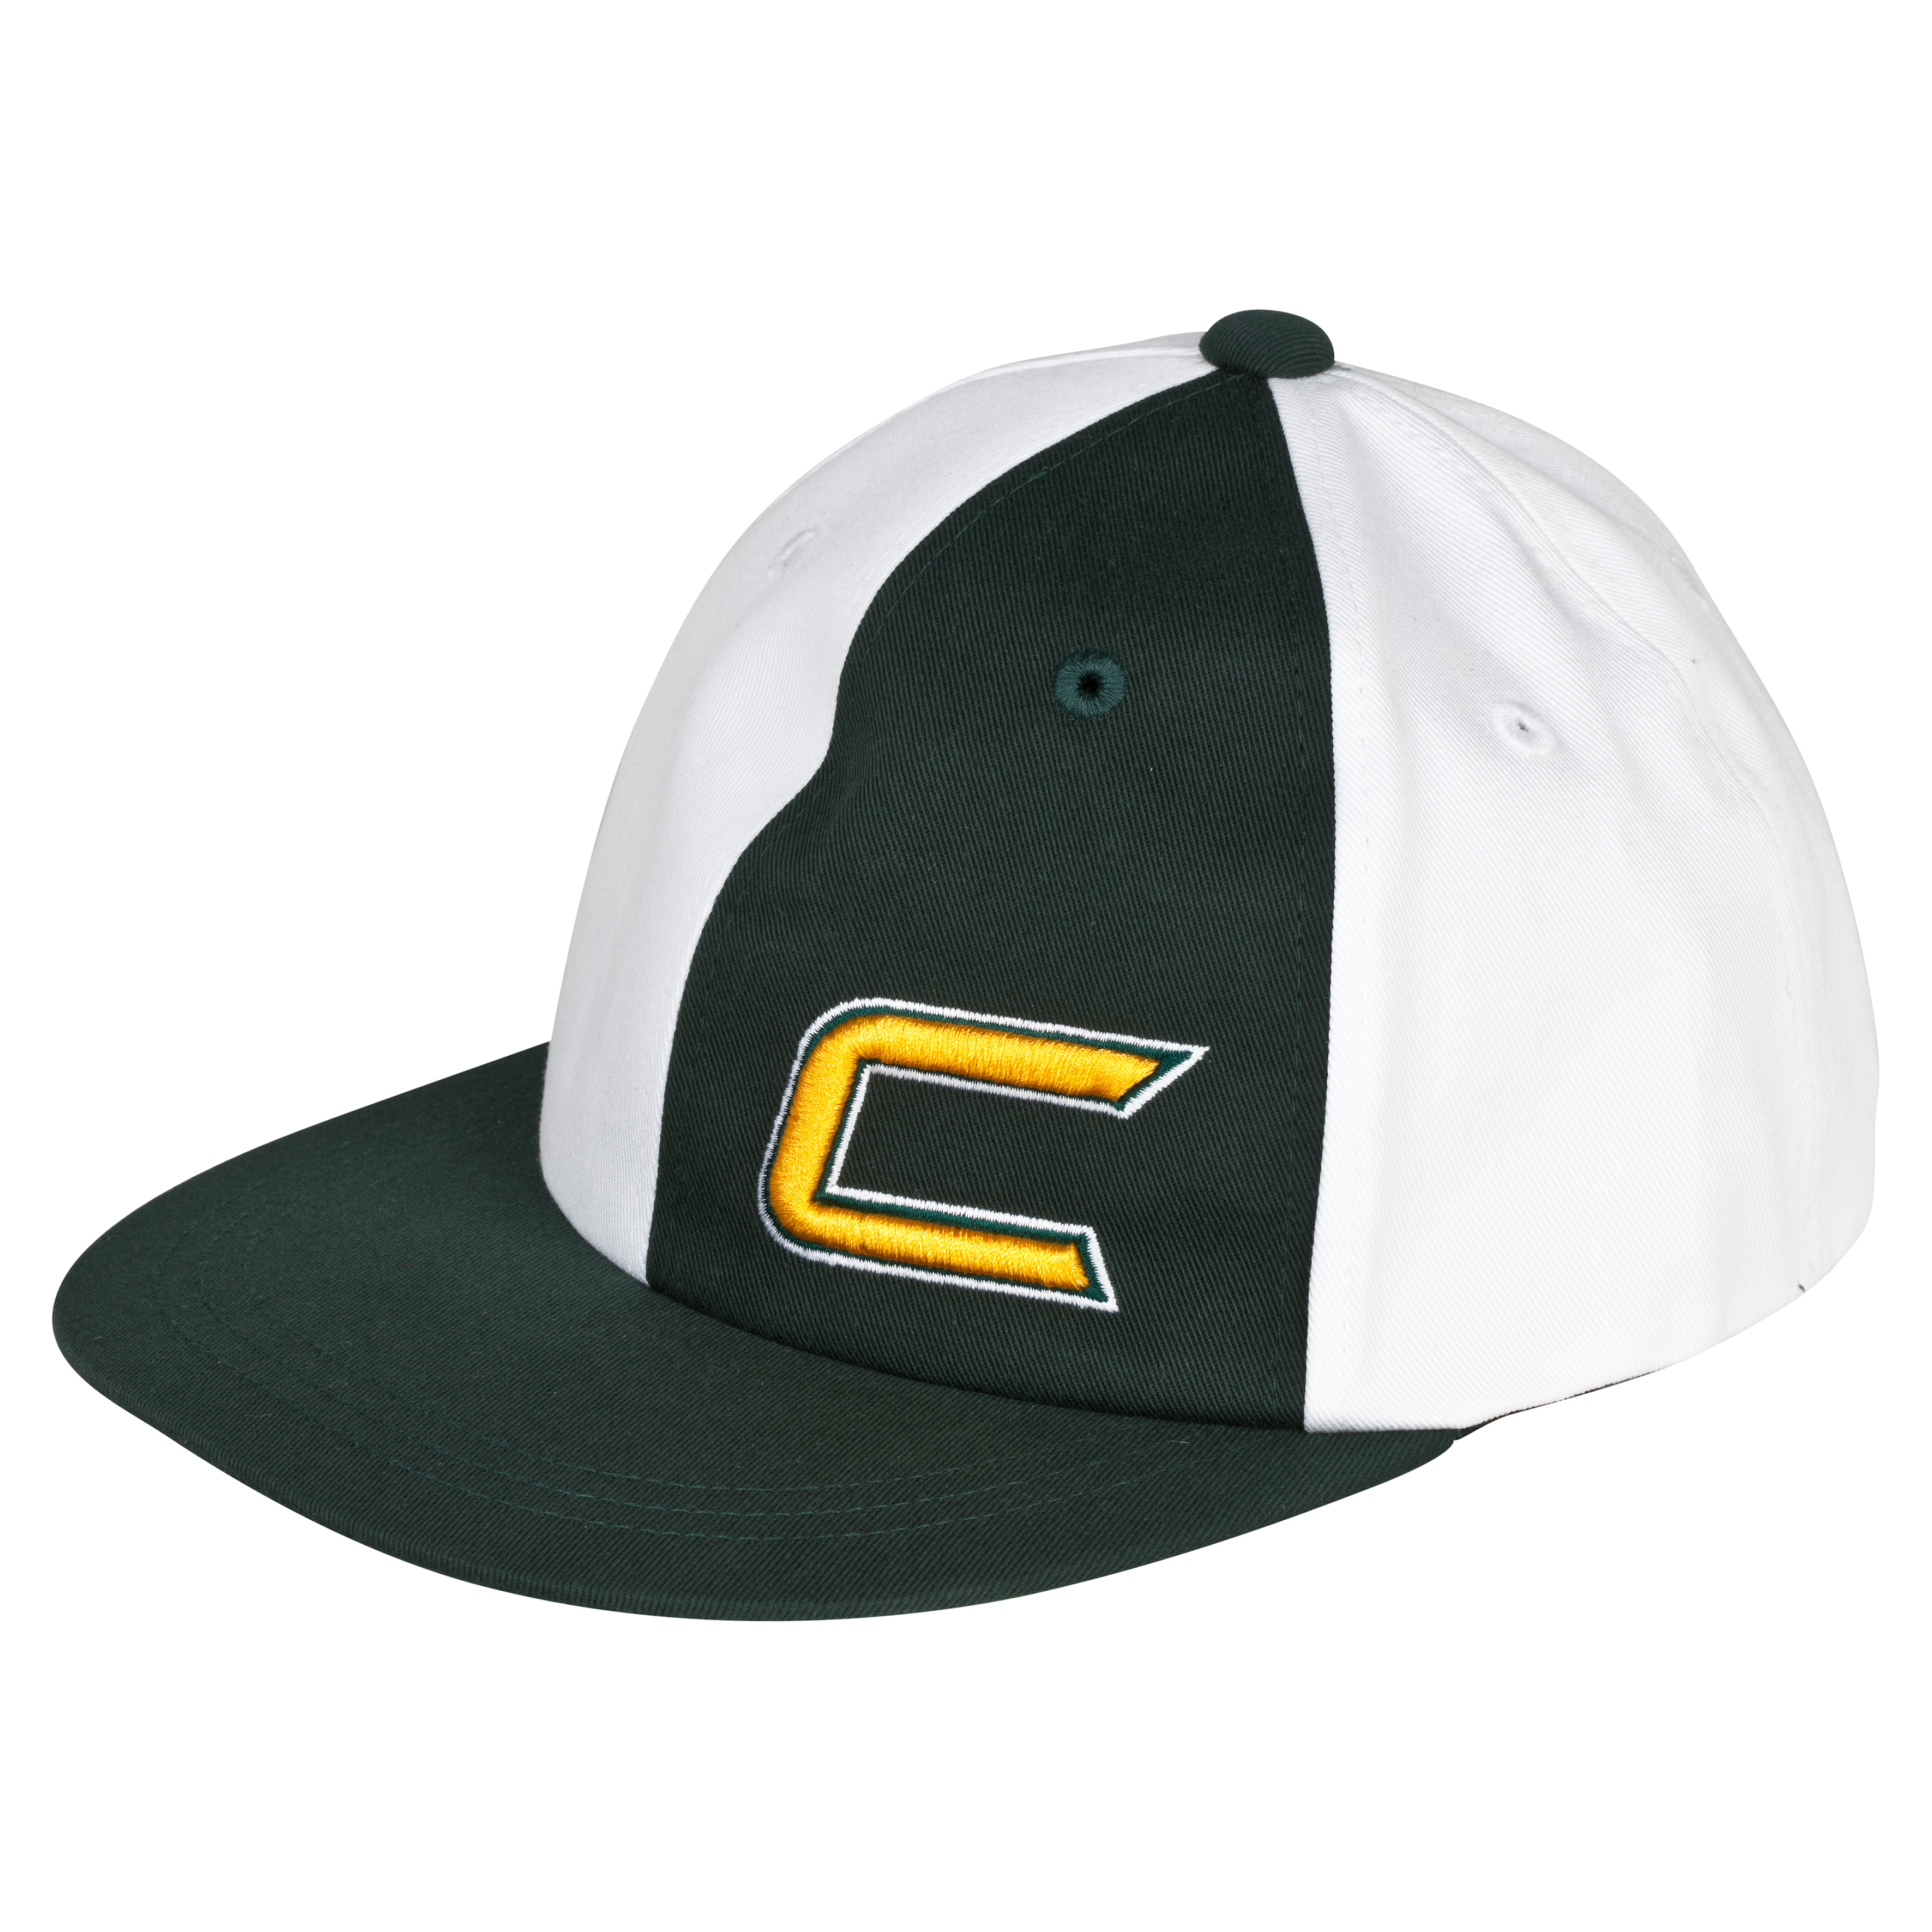 Caterham F1 Team Flat Peak Cap